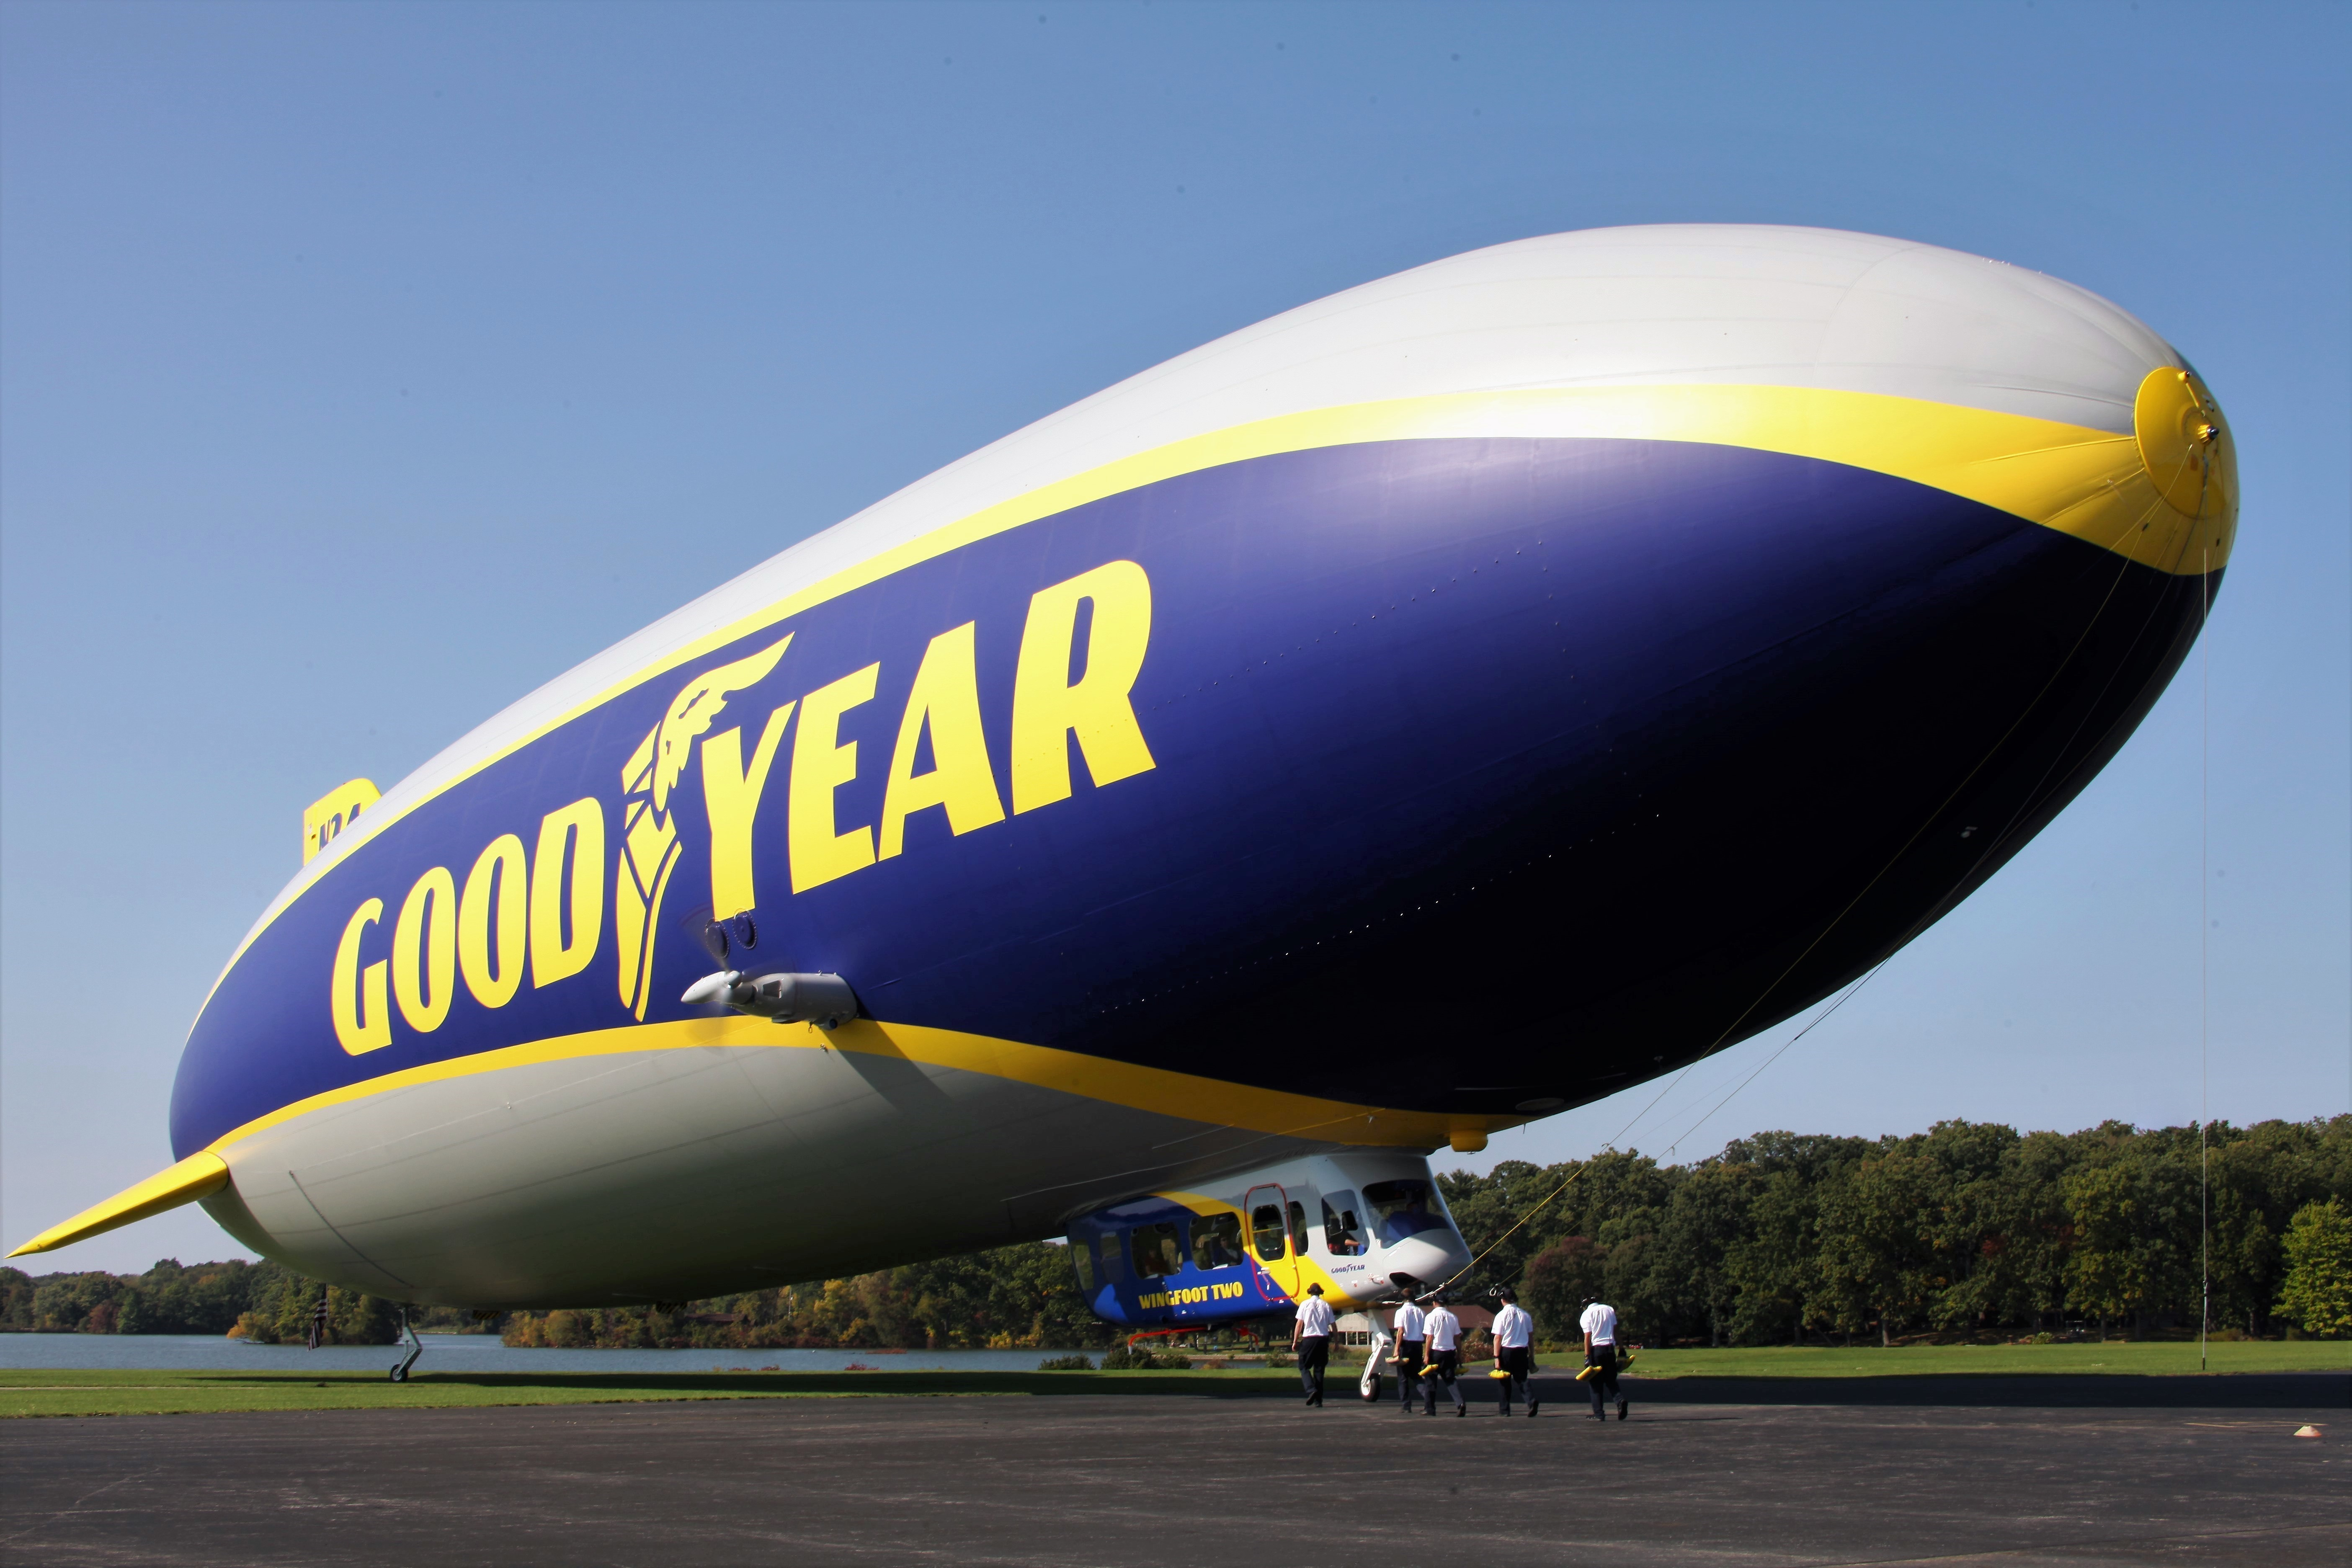 Goodyear christens replacement airship - The Blade